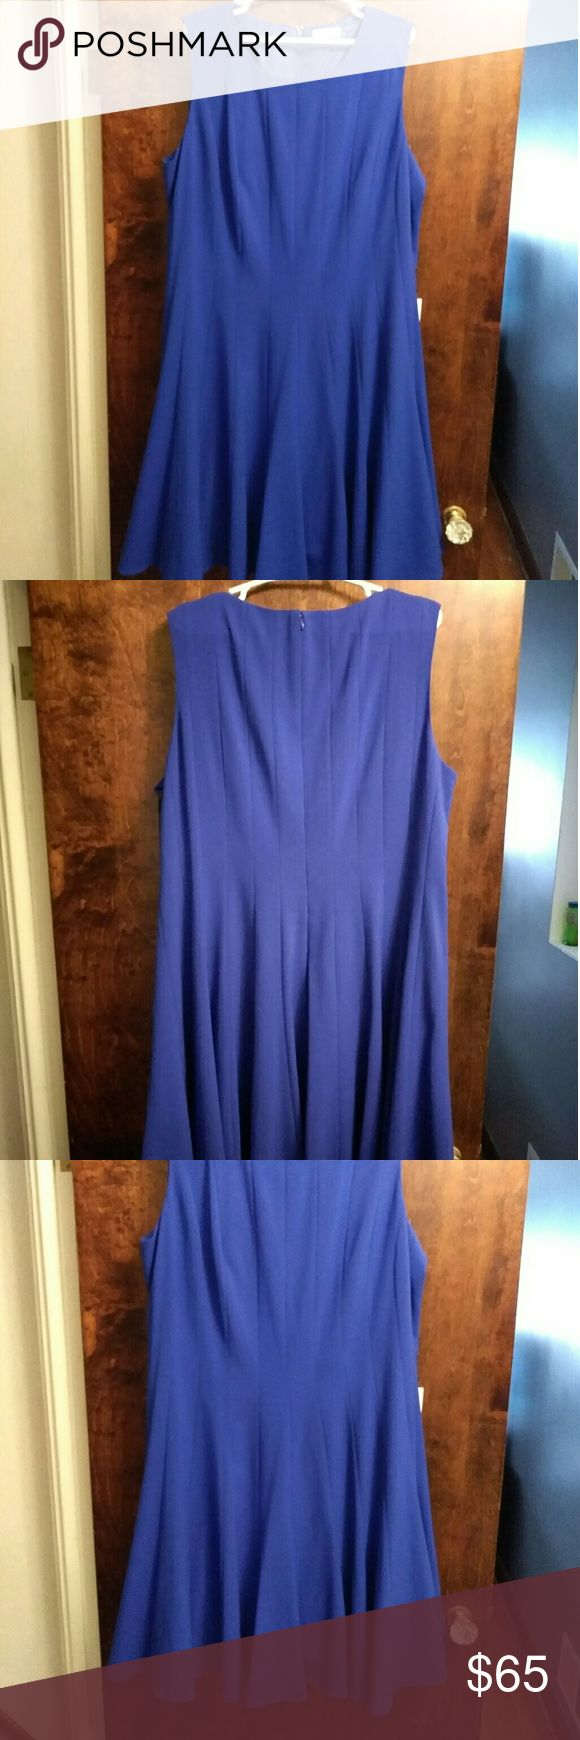 Calvin Klein **Blue** Pleated Dress Plus Size 22W New gorgeous and flattering dress by Calvin Klein.   Slightly fitted in bust Flared at waist A-line skirt Empire waist  Hidden back zipper with hook and eye closure  Polyester/Rayon/spandex; lining: polyester  Retails for $100 Please feel free to ask questions or request more pics. Calvin Klein Dresses